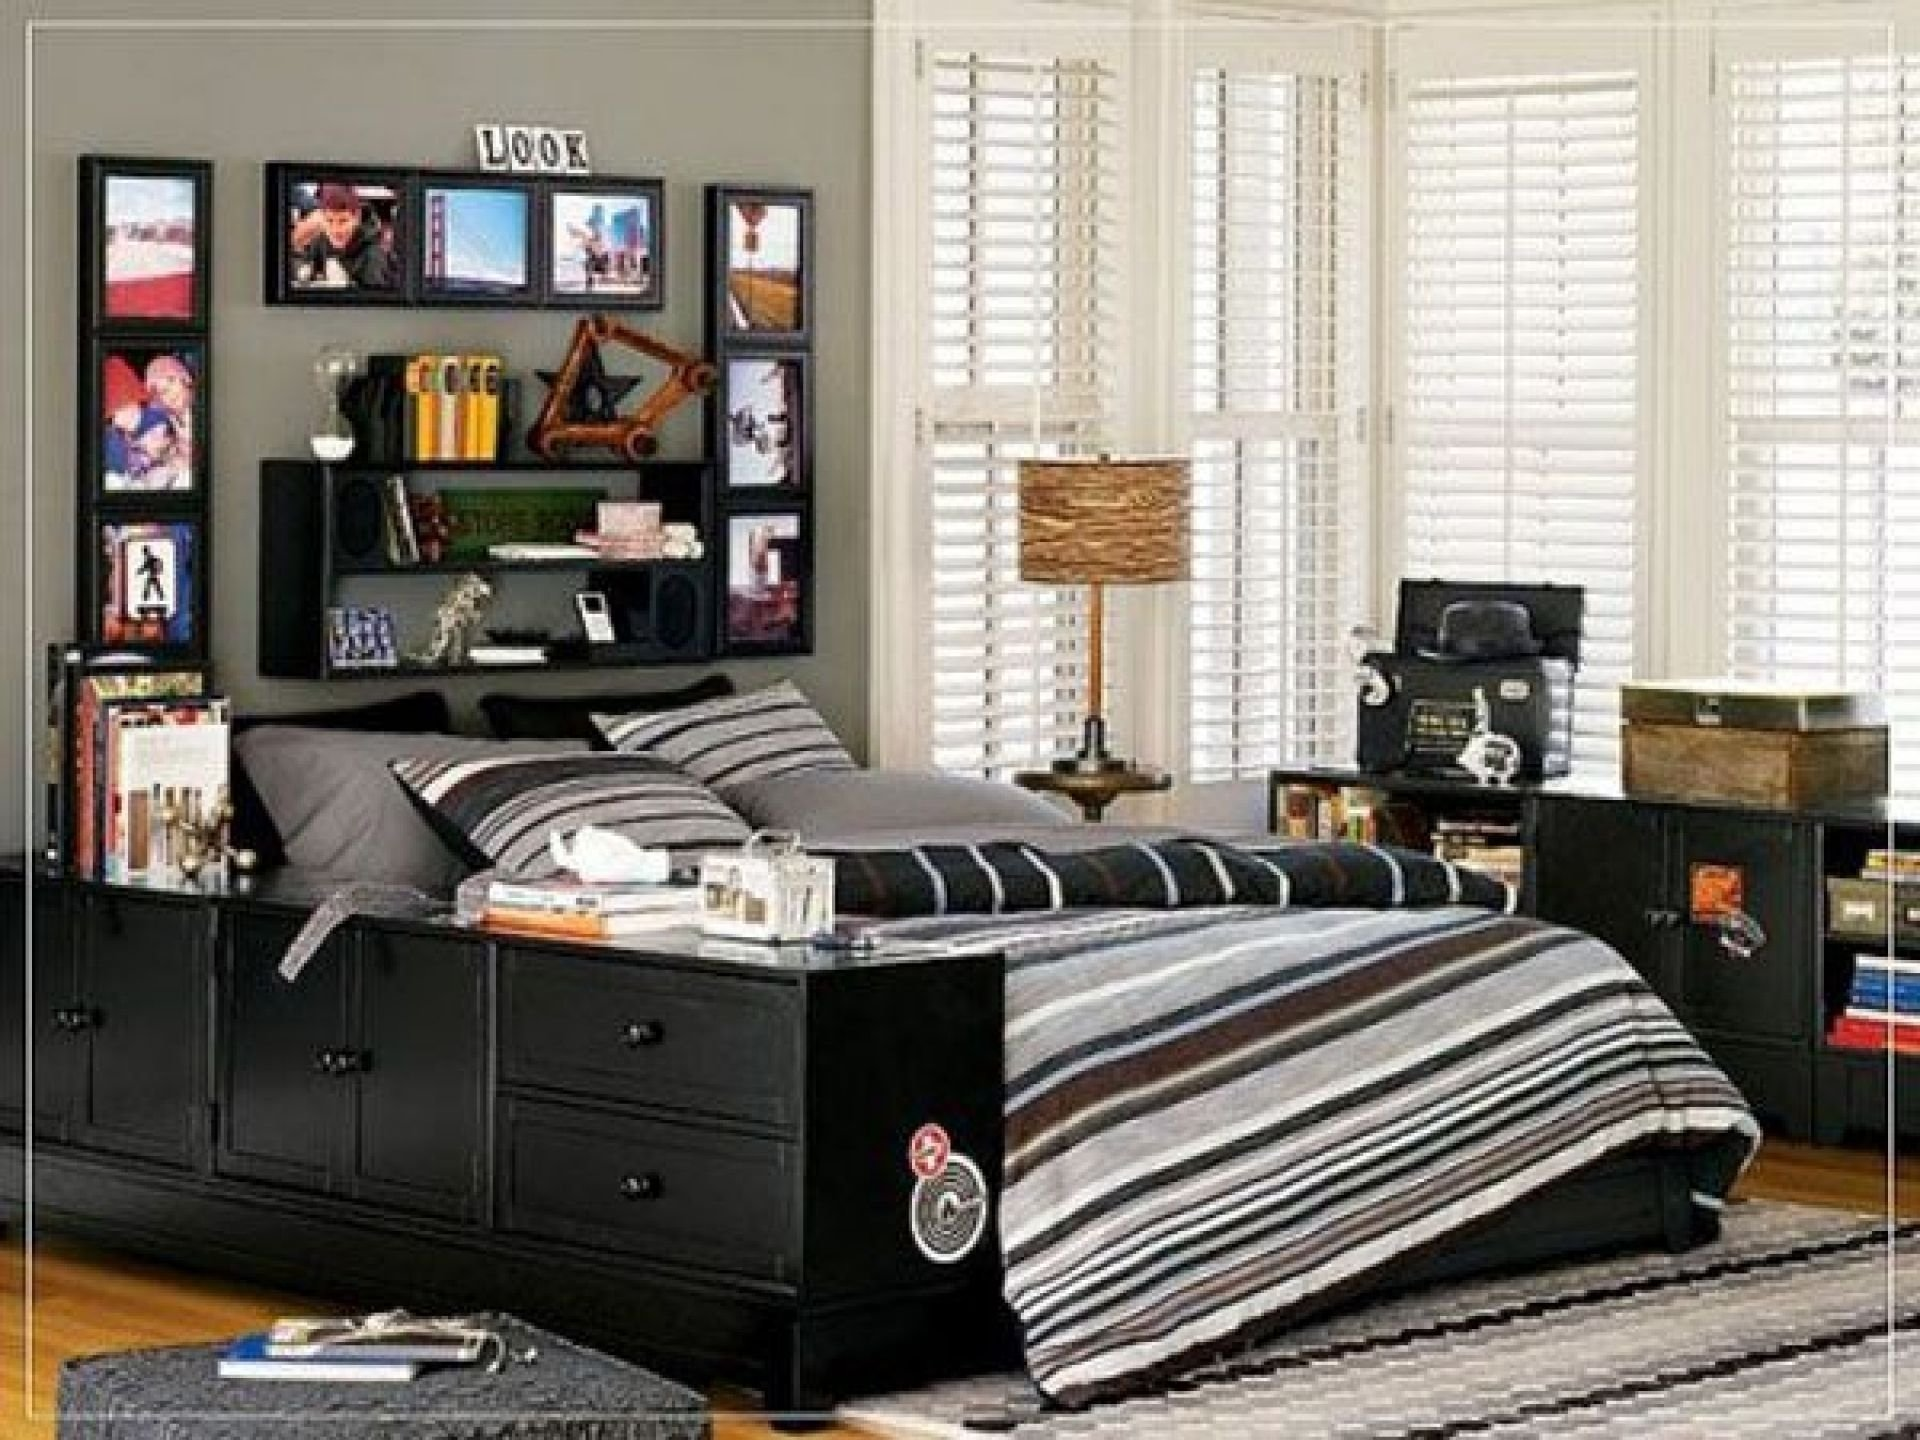 10 Great Room Design Ideas For Guys bedroom ideas for teenage guys with small rooms google search 2 2020